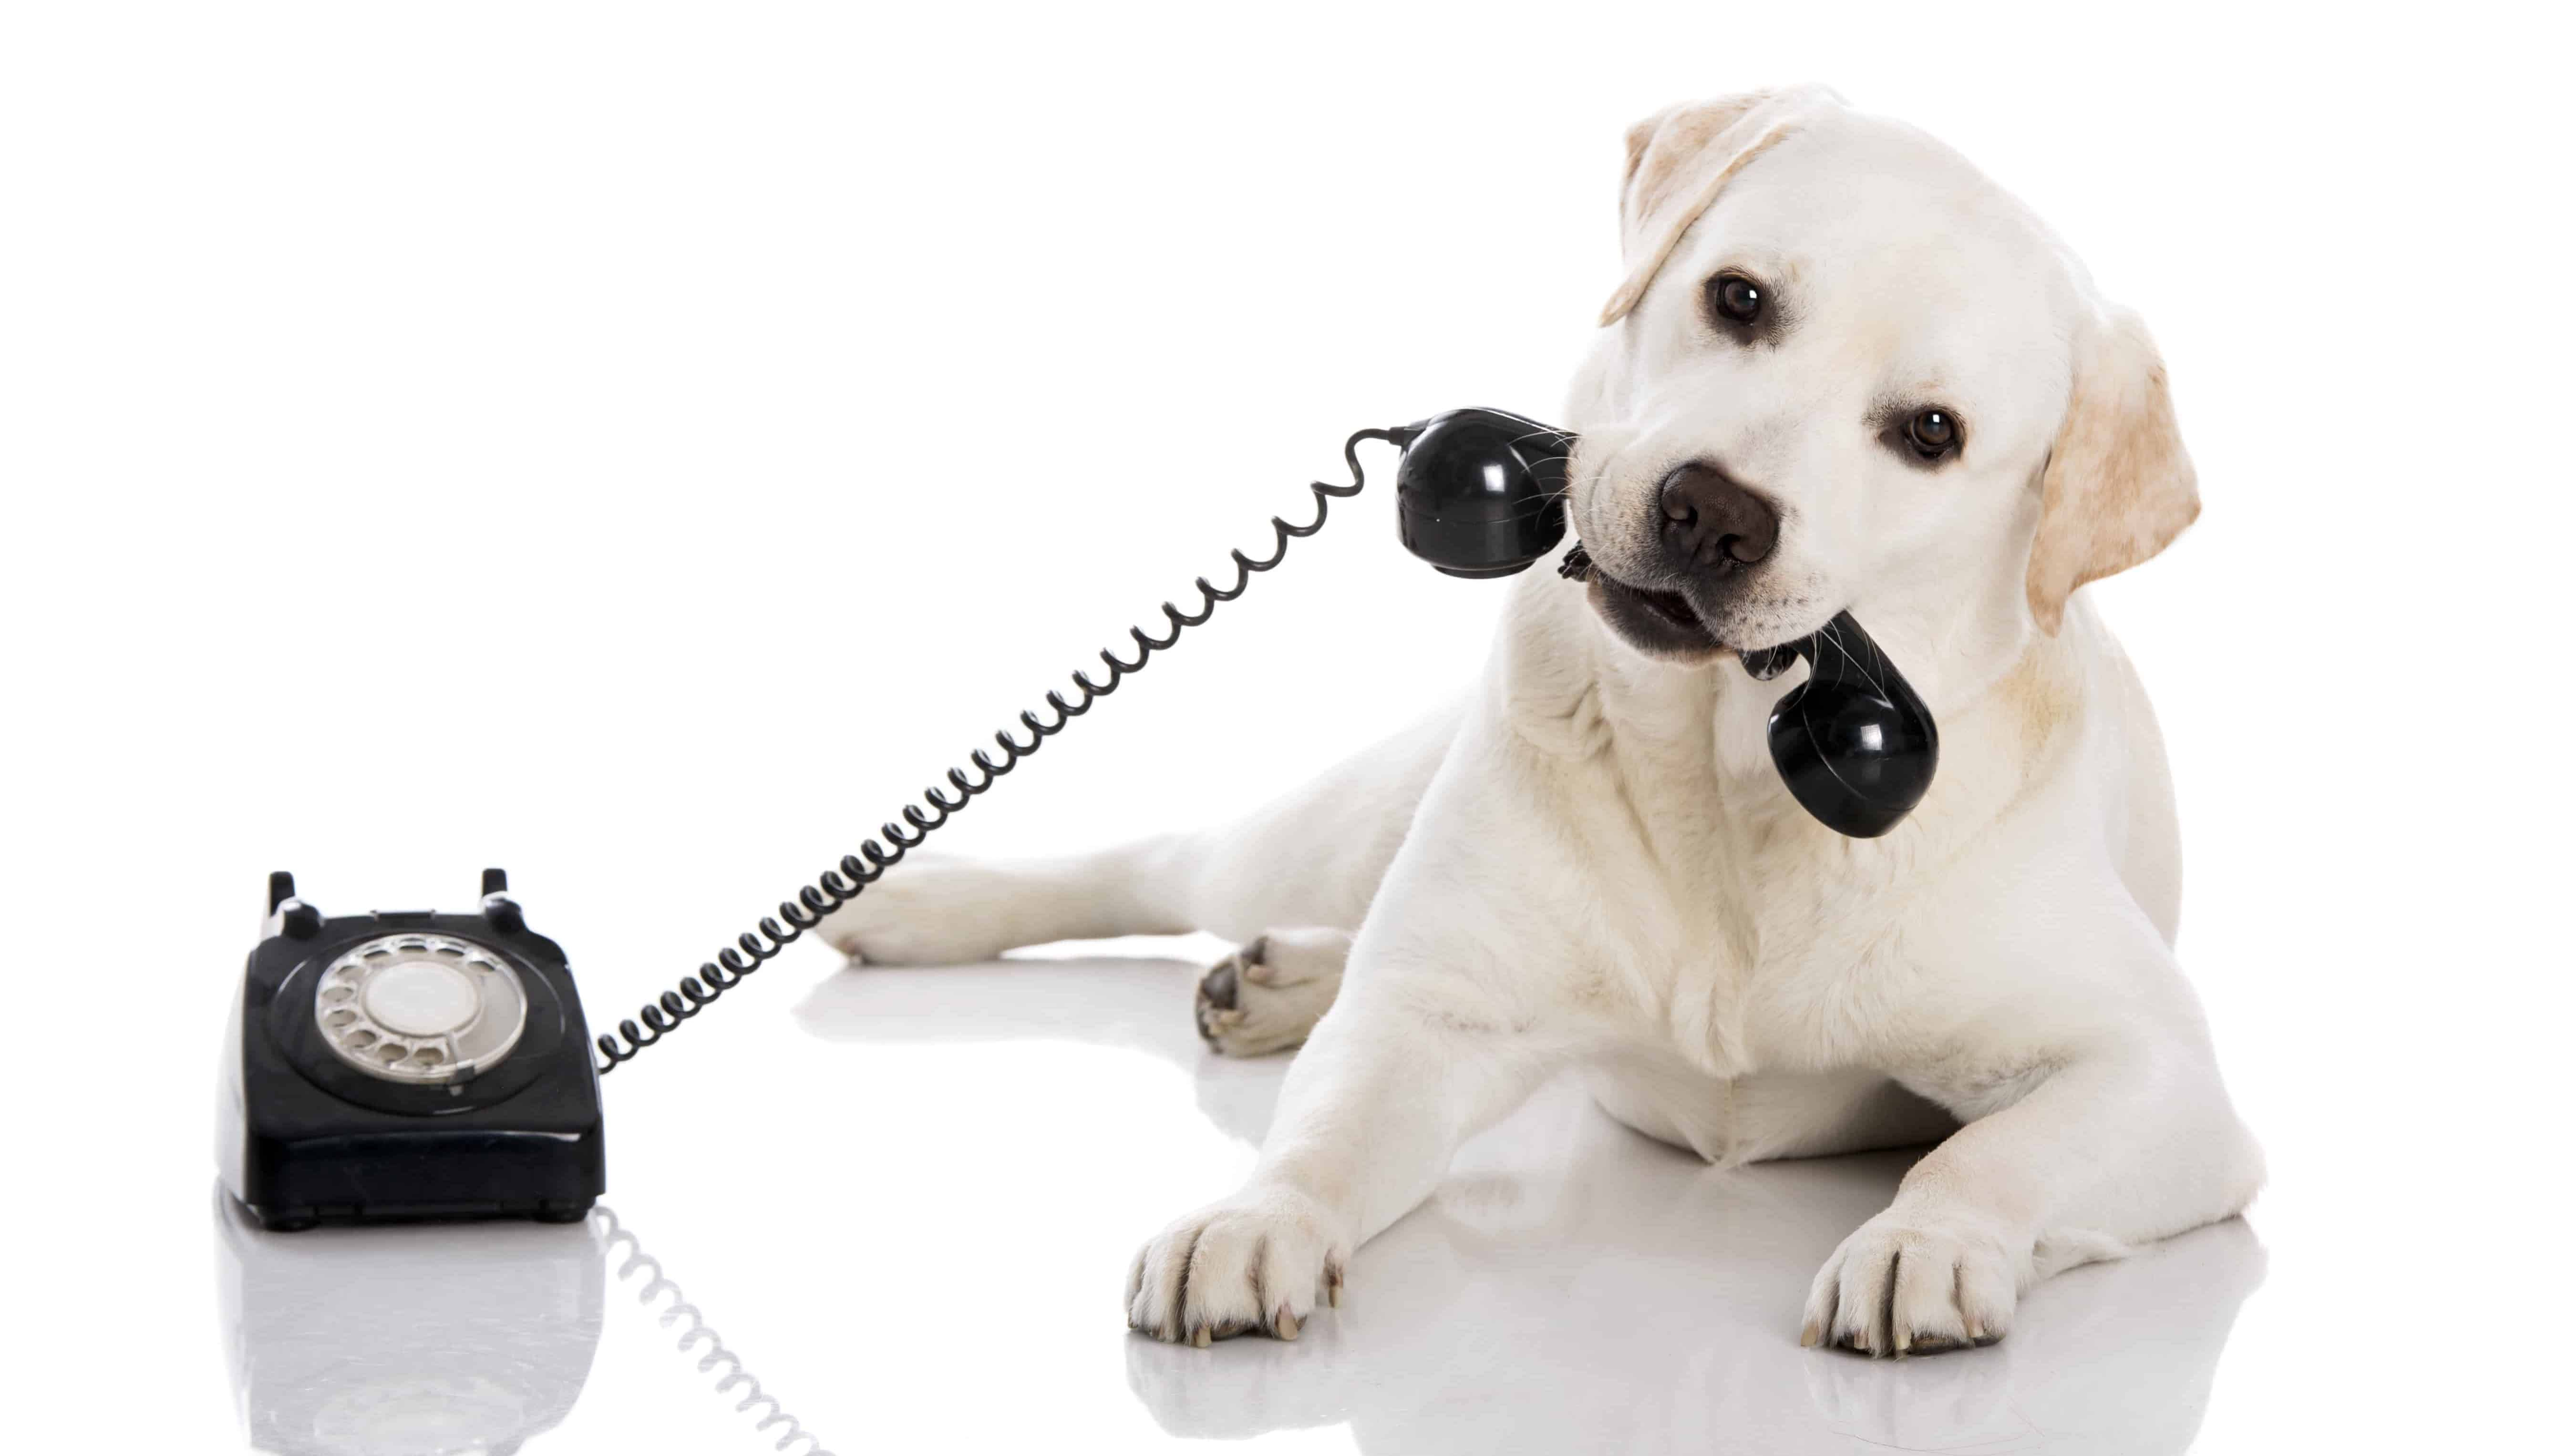 white Labrador dog holding a phone in its mouth